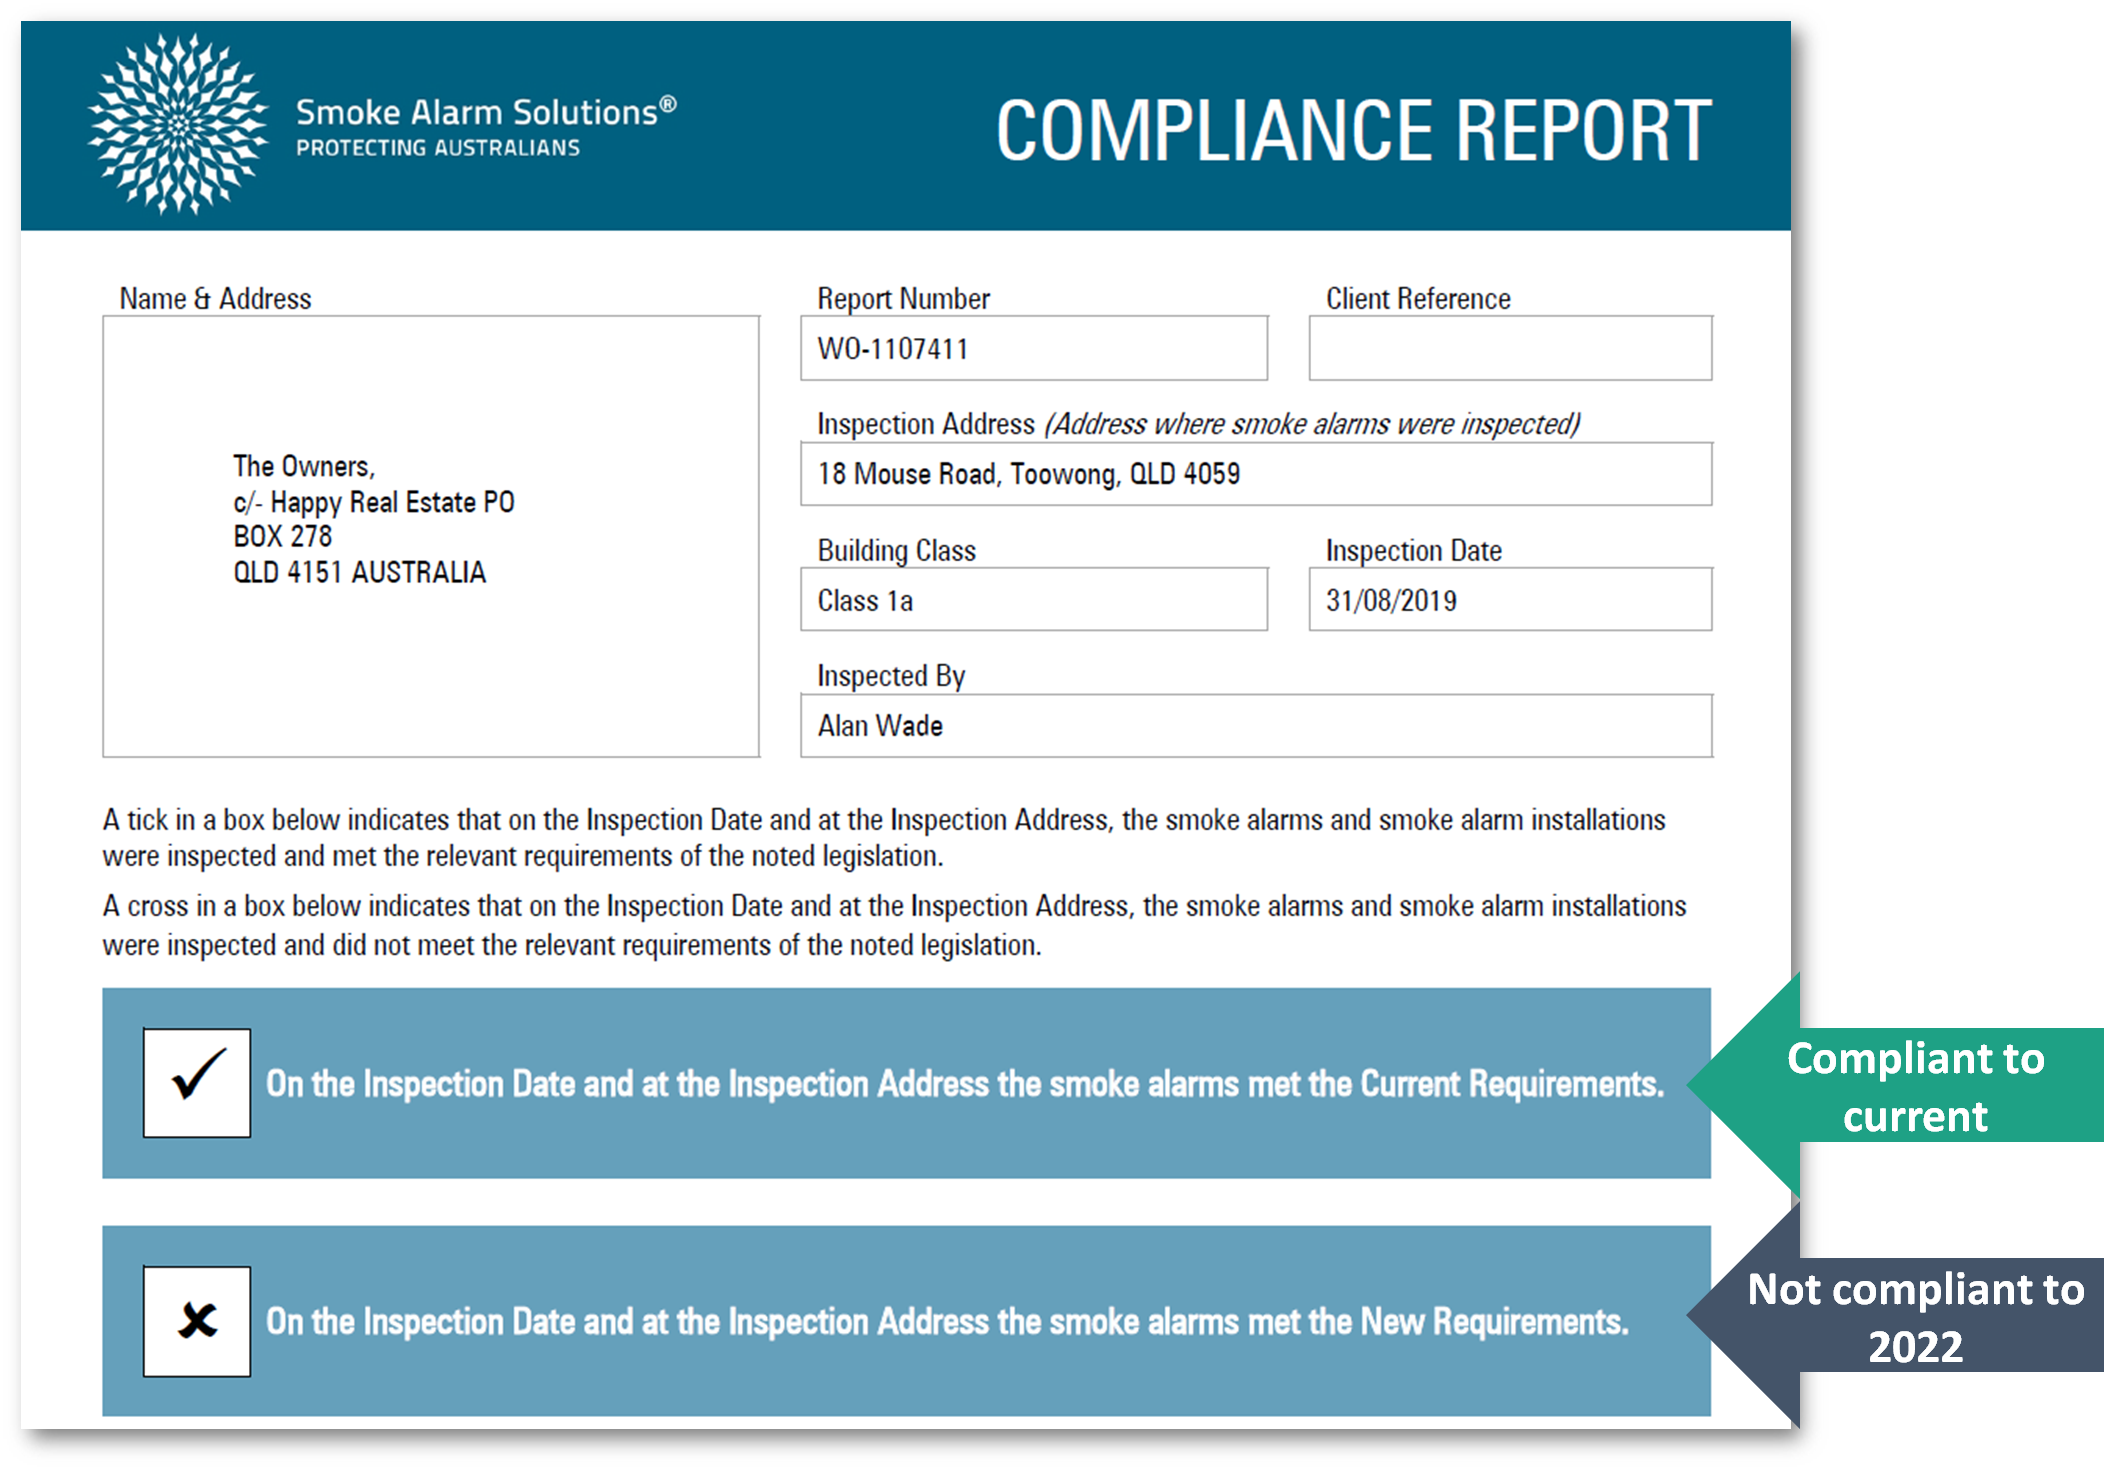 Compliance Report Not 2022